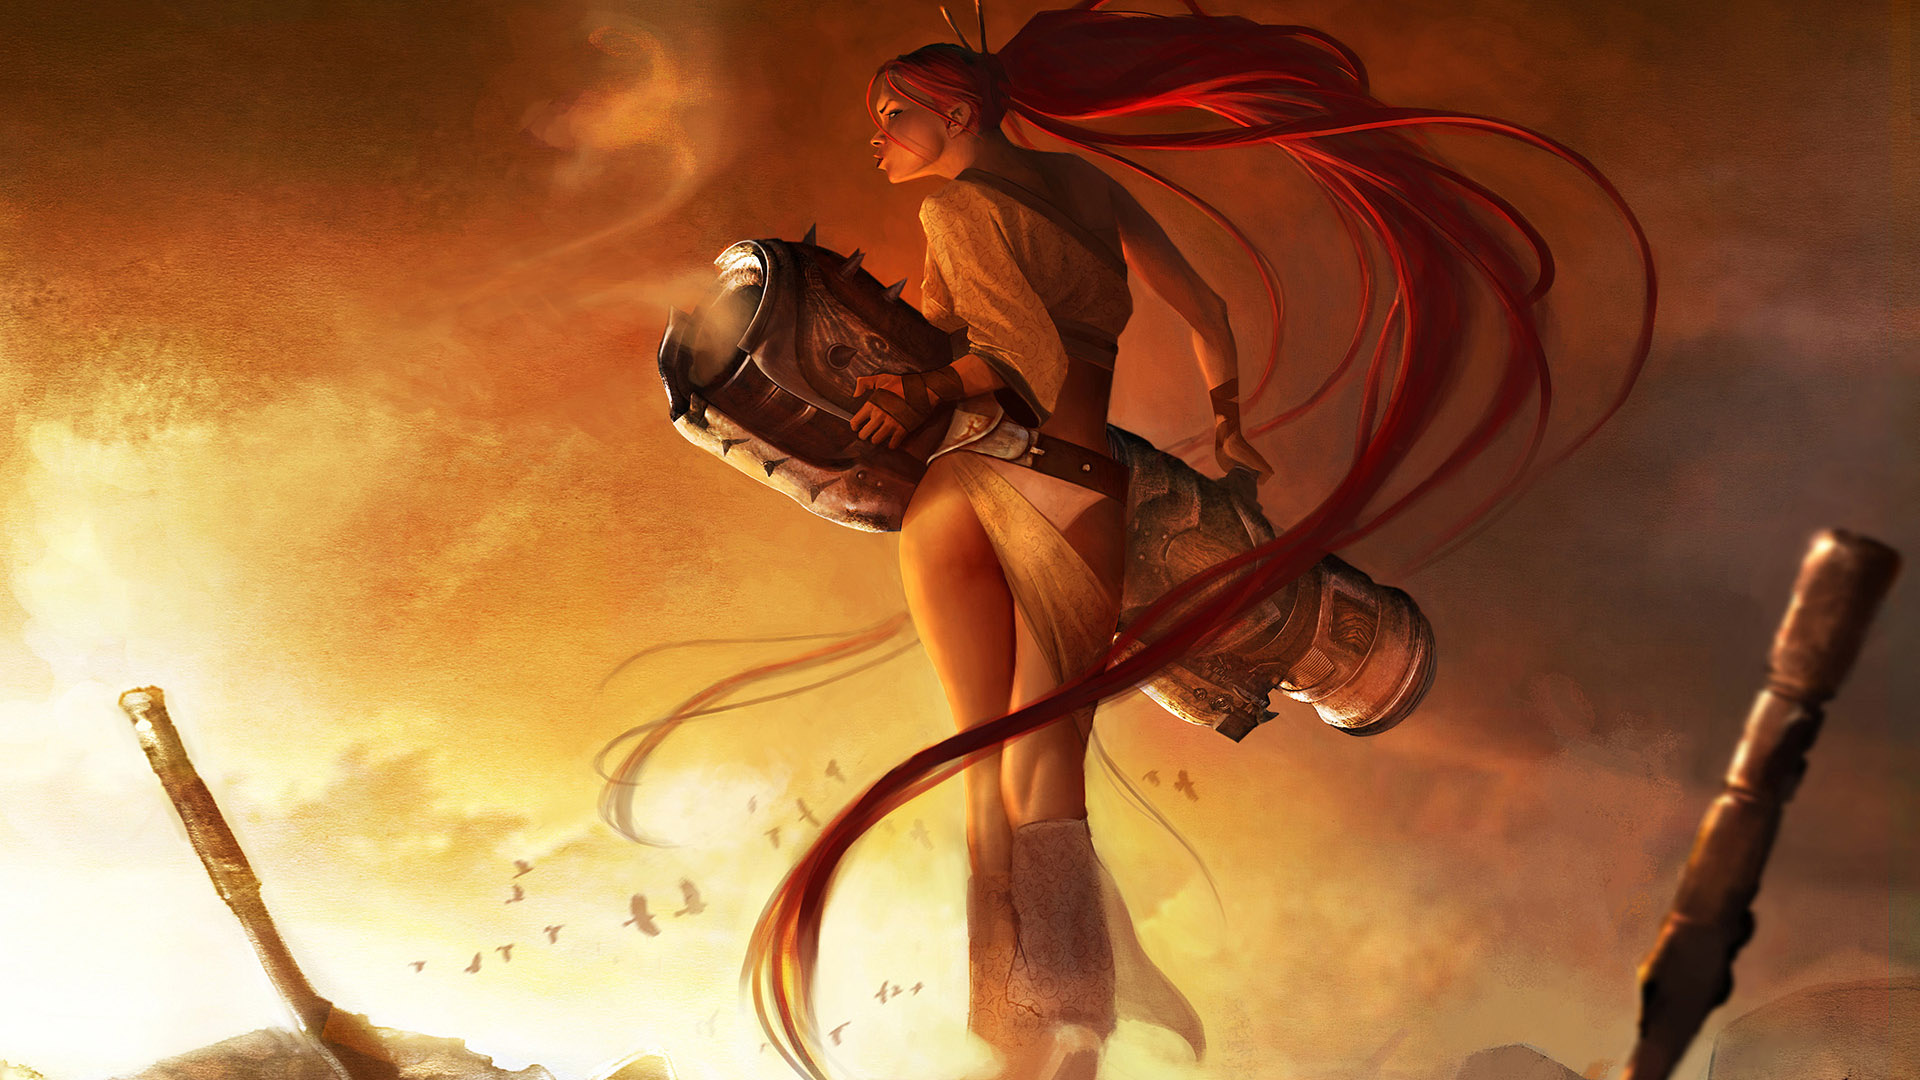 Video Game - Heavenly Sword Wallpaper